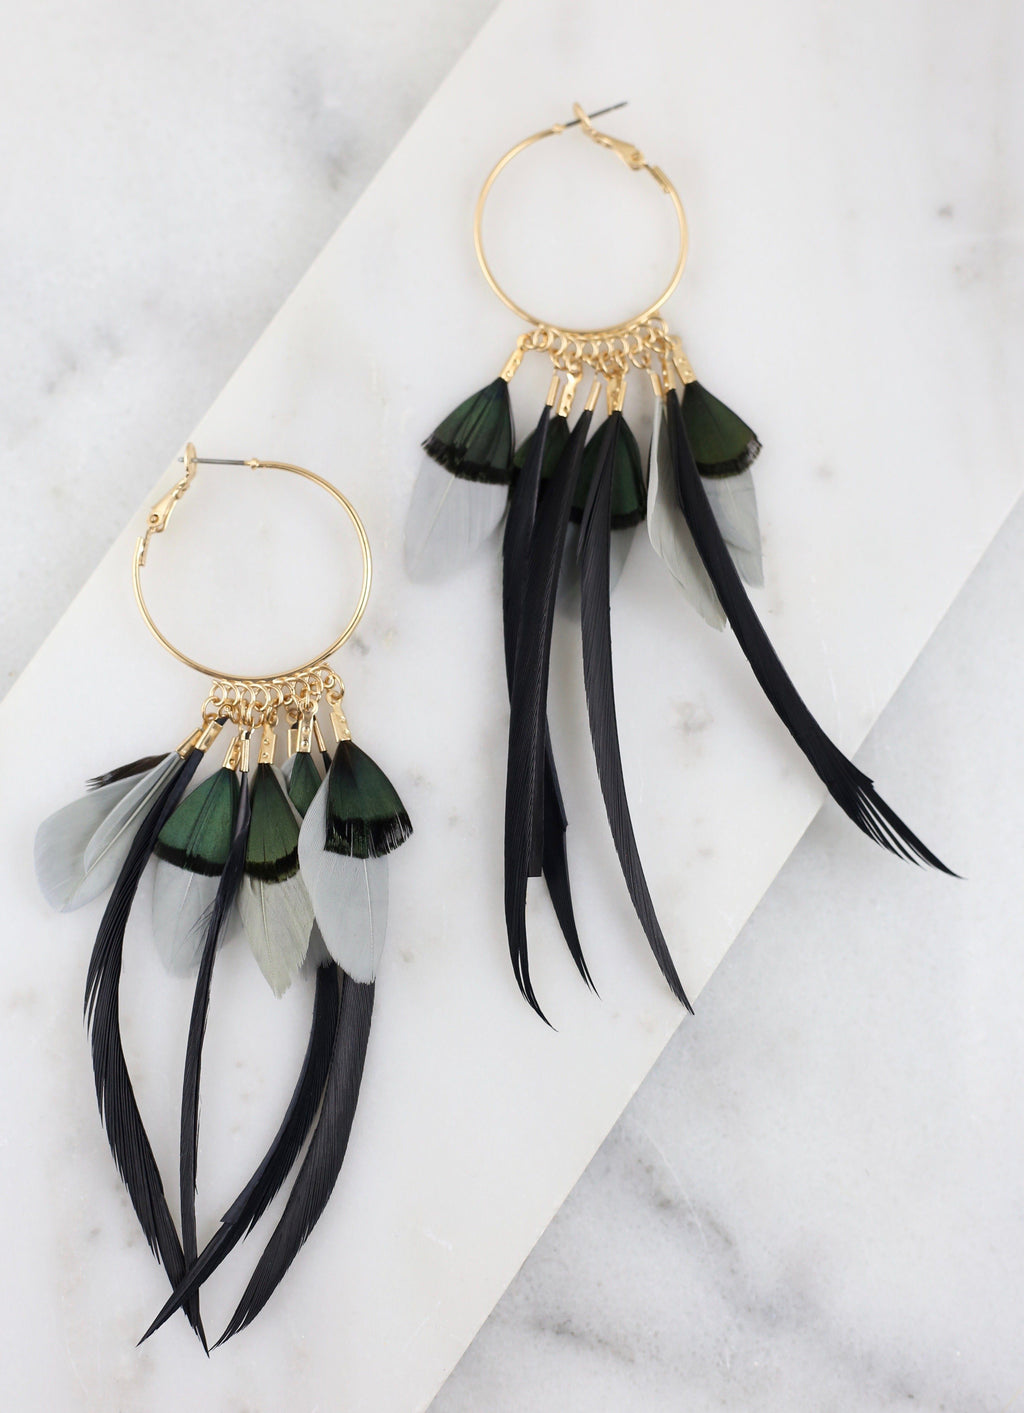 Buono Black Feather Earring - Caroline Hill